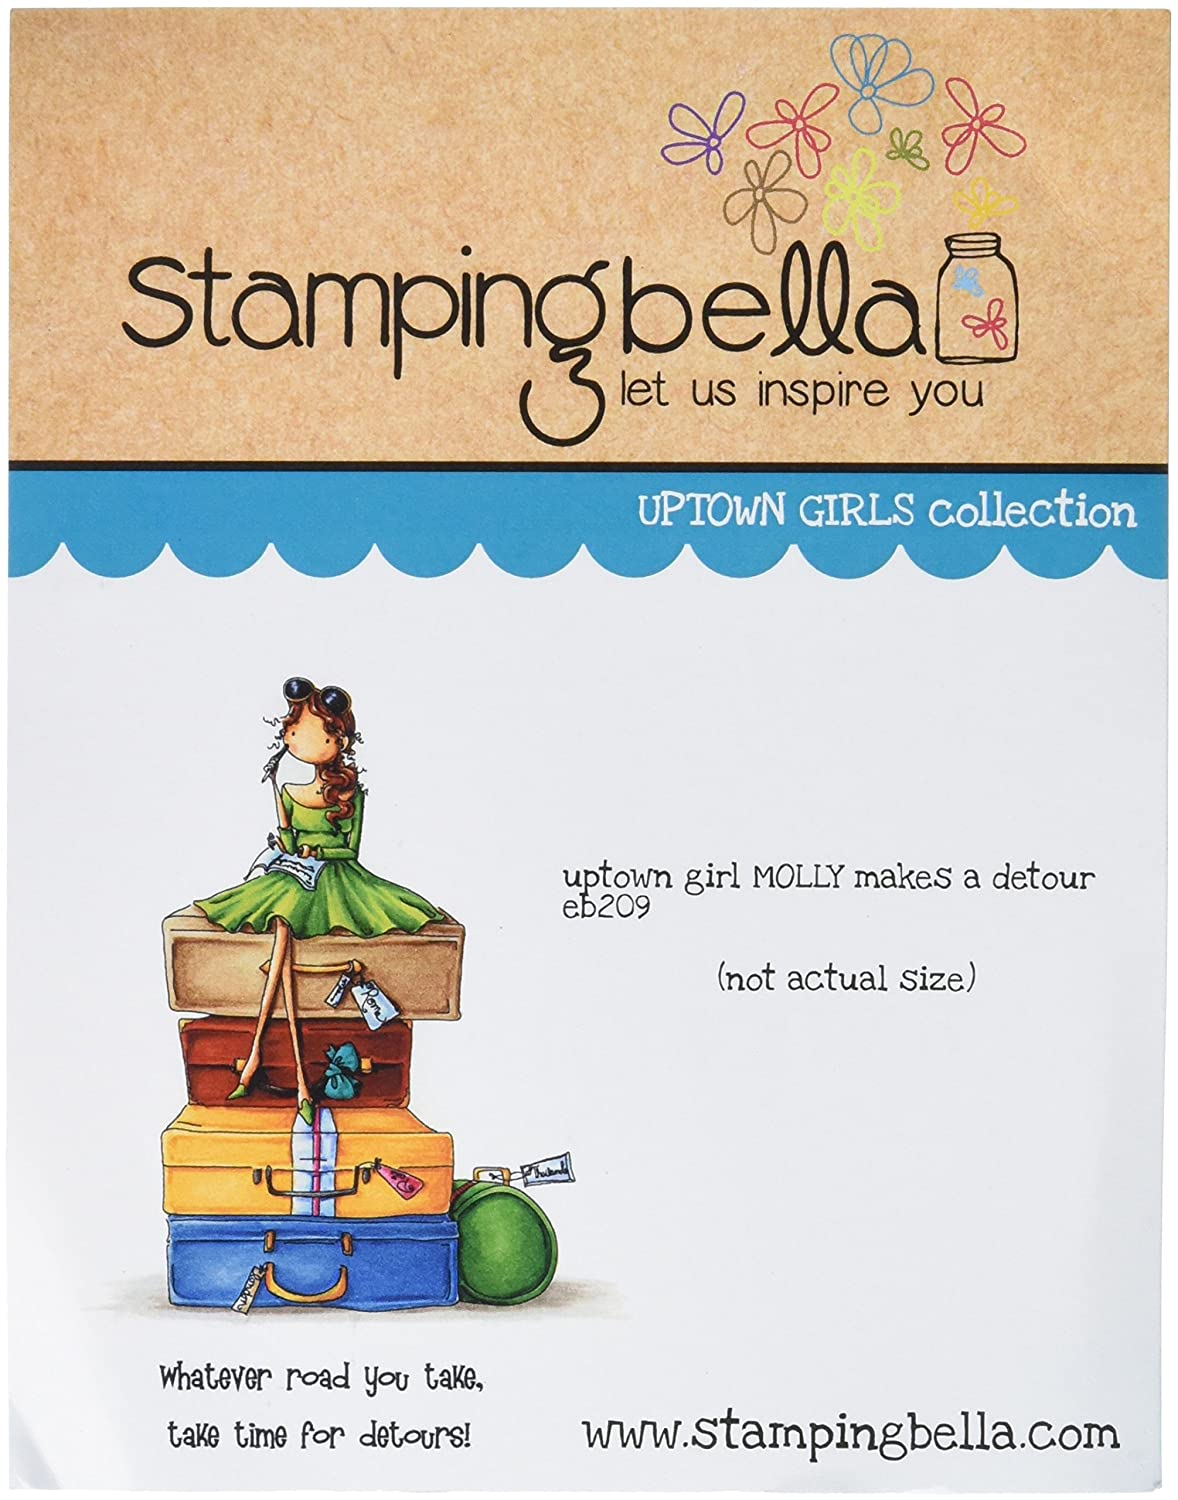 6.5 x 4.5 Stamping Bella Uptown Girl Molly Makes A Detour Cling Rubber Stamp